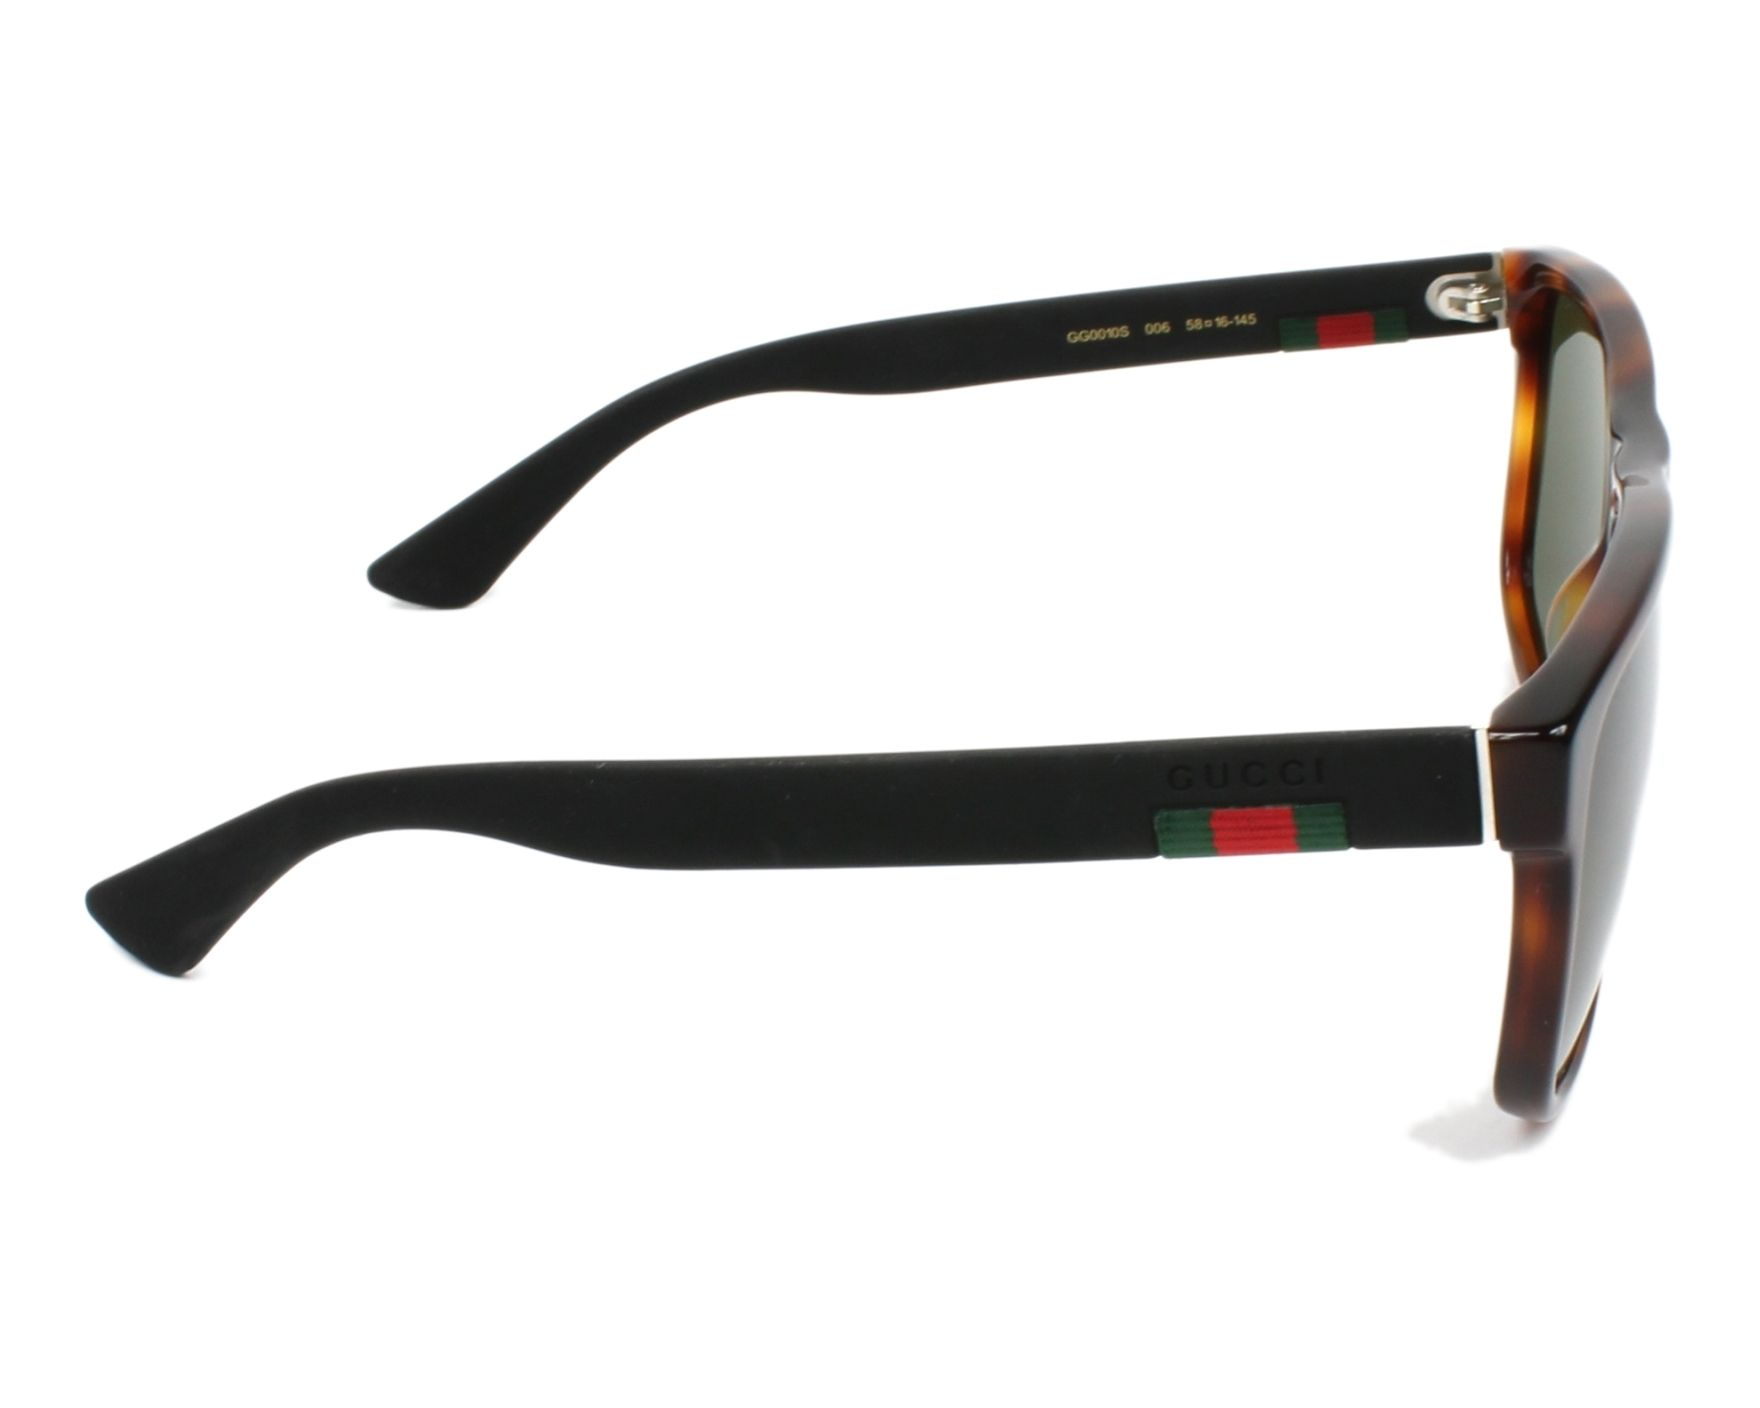 1d1113e601 Sunglasses Gucci GG-0010-S 006 58-16 Havana Black side view